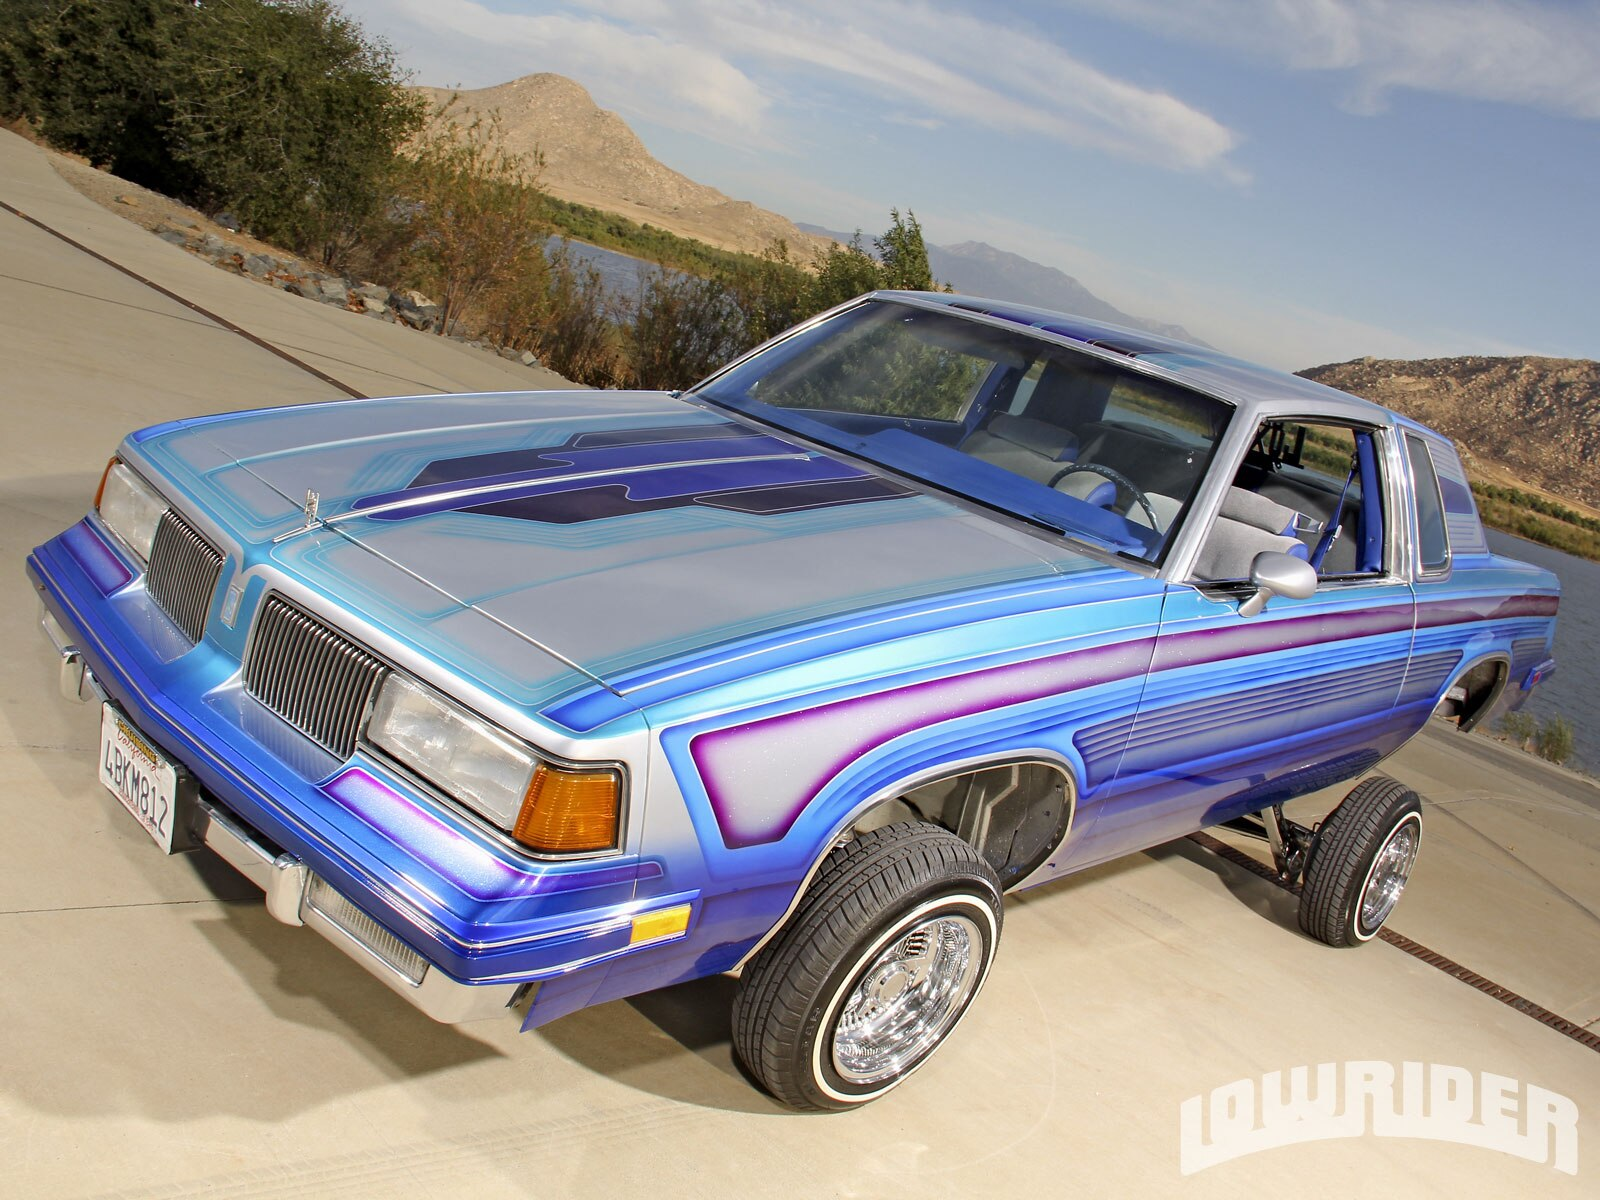 1207-lrmp-09-o-1983-oldsmobile-cutlass-driver-side-front-view2